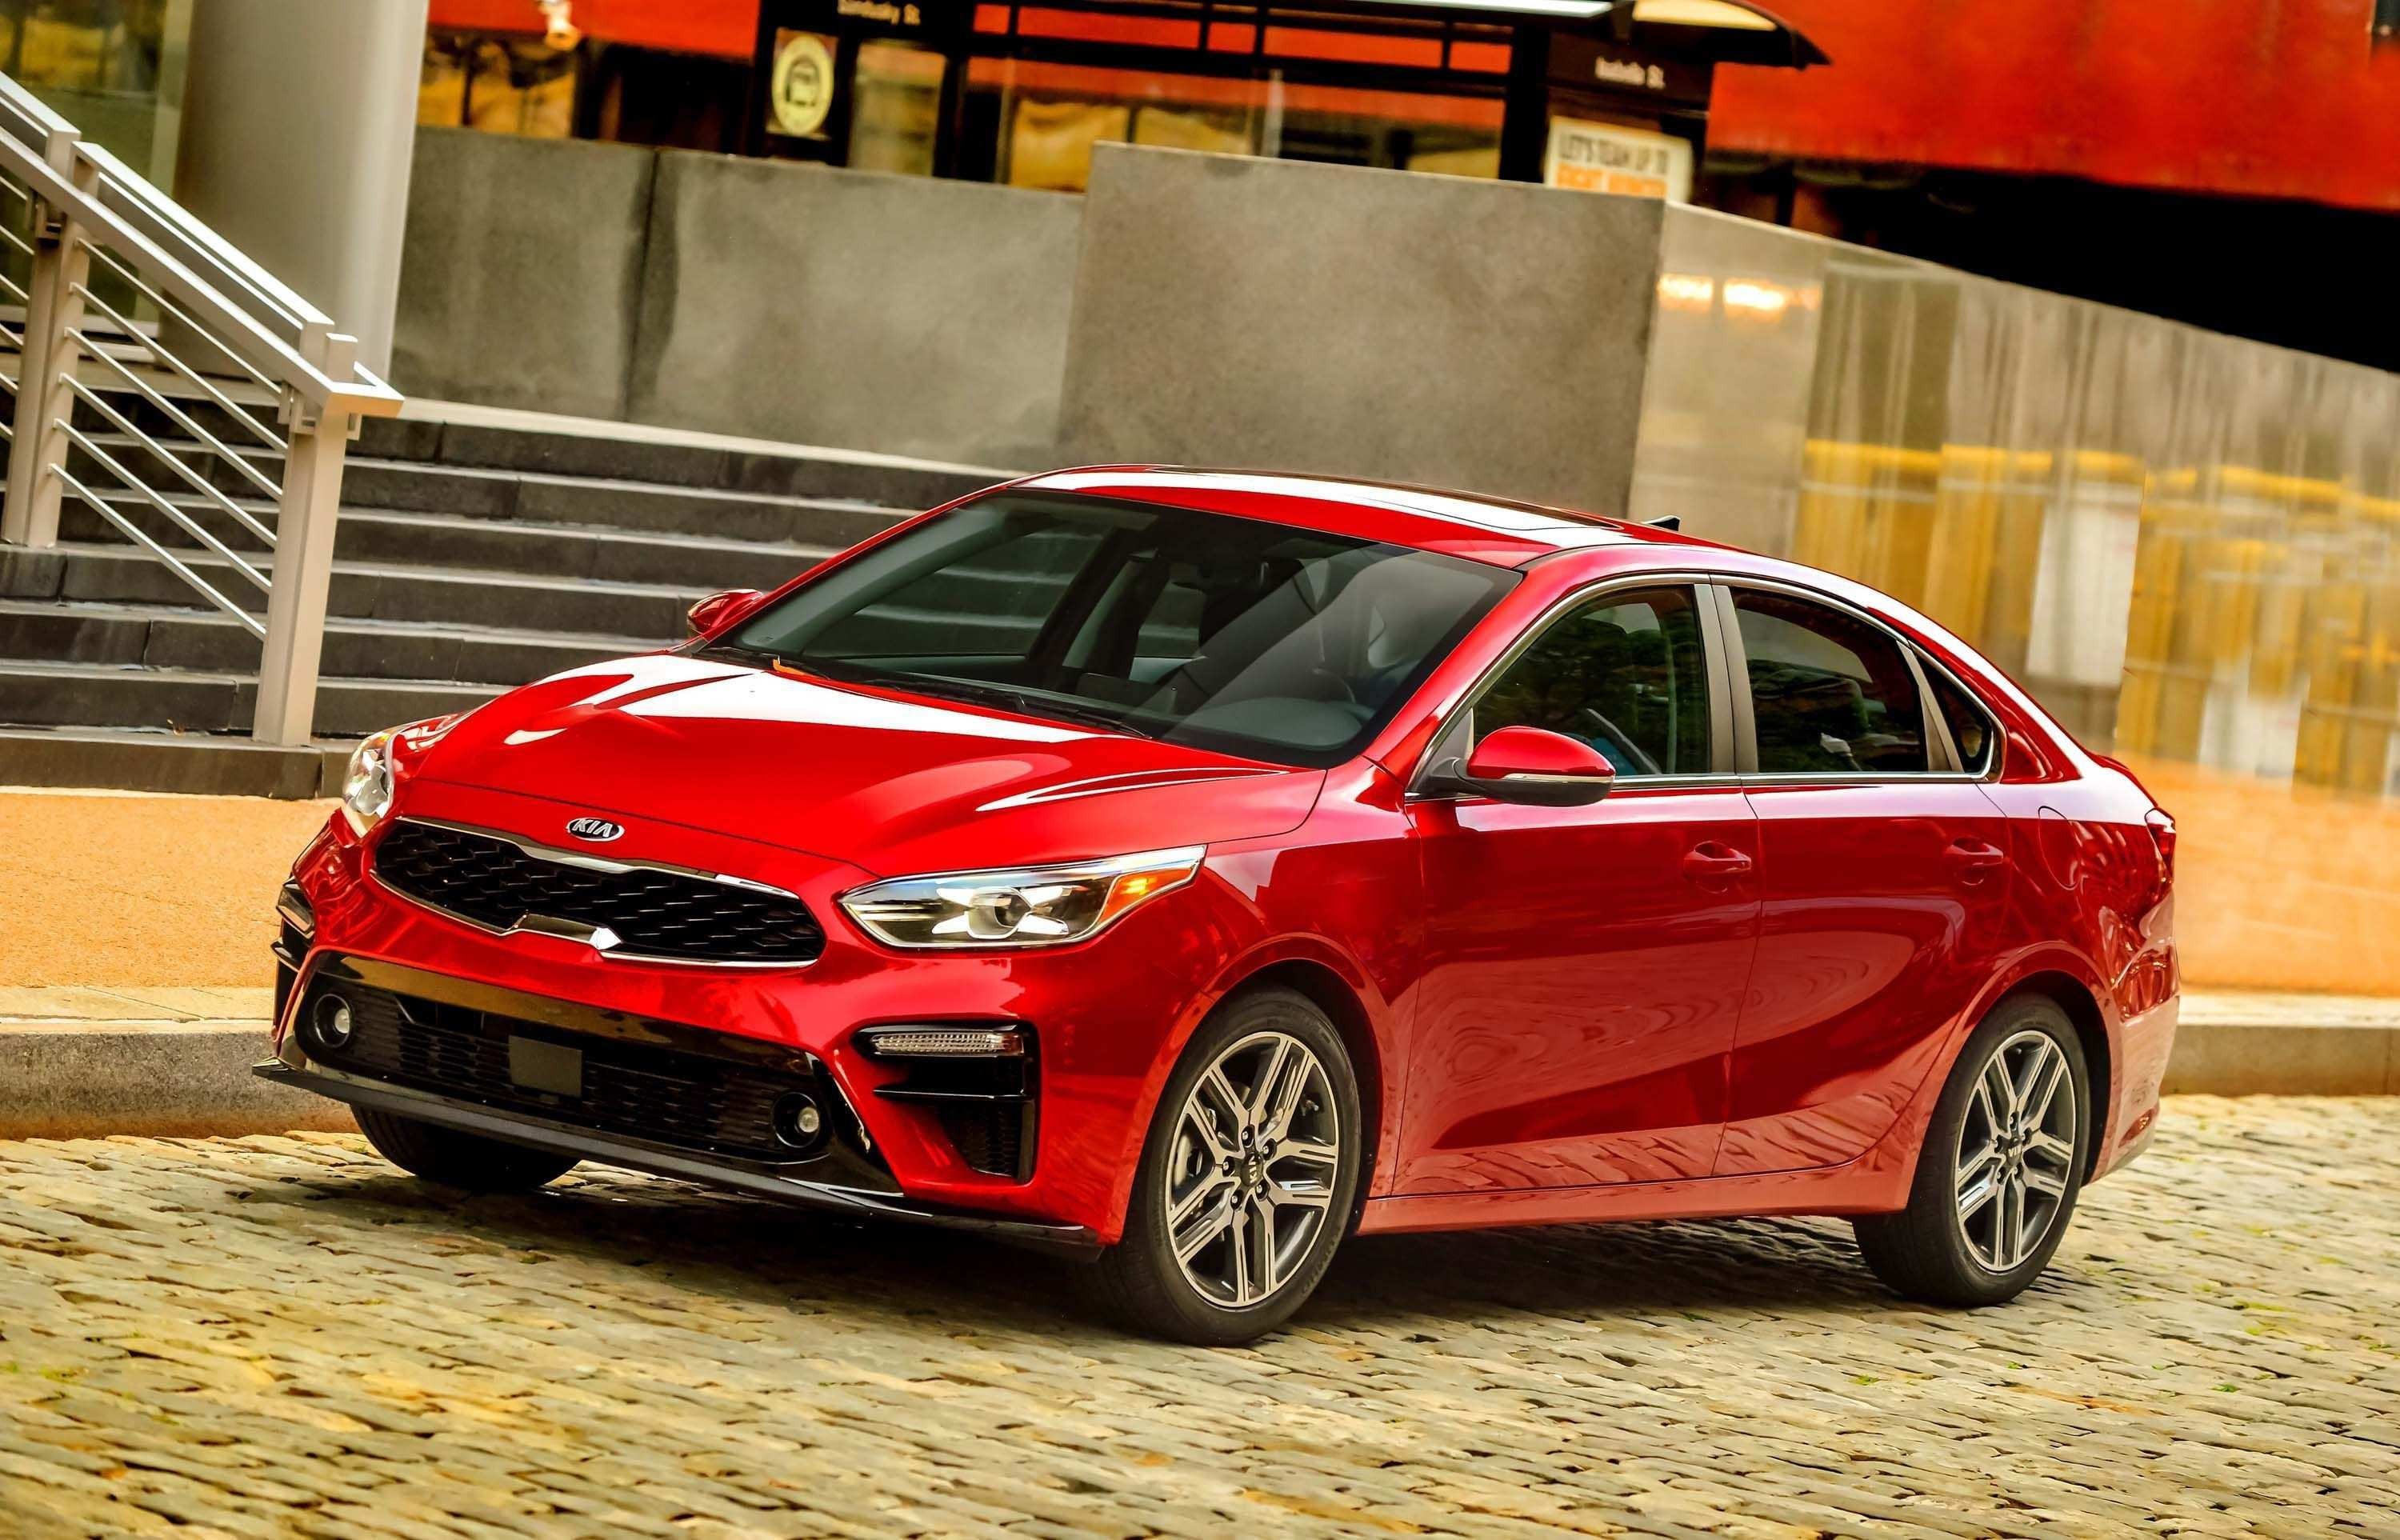 85 New The Kia Forte 2019 Specs And Review Release for The Kia Forte 2019 Specs And Review